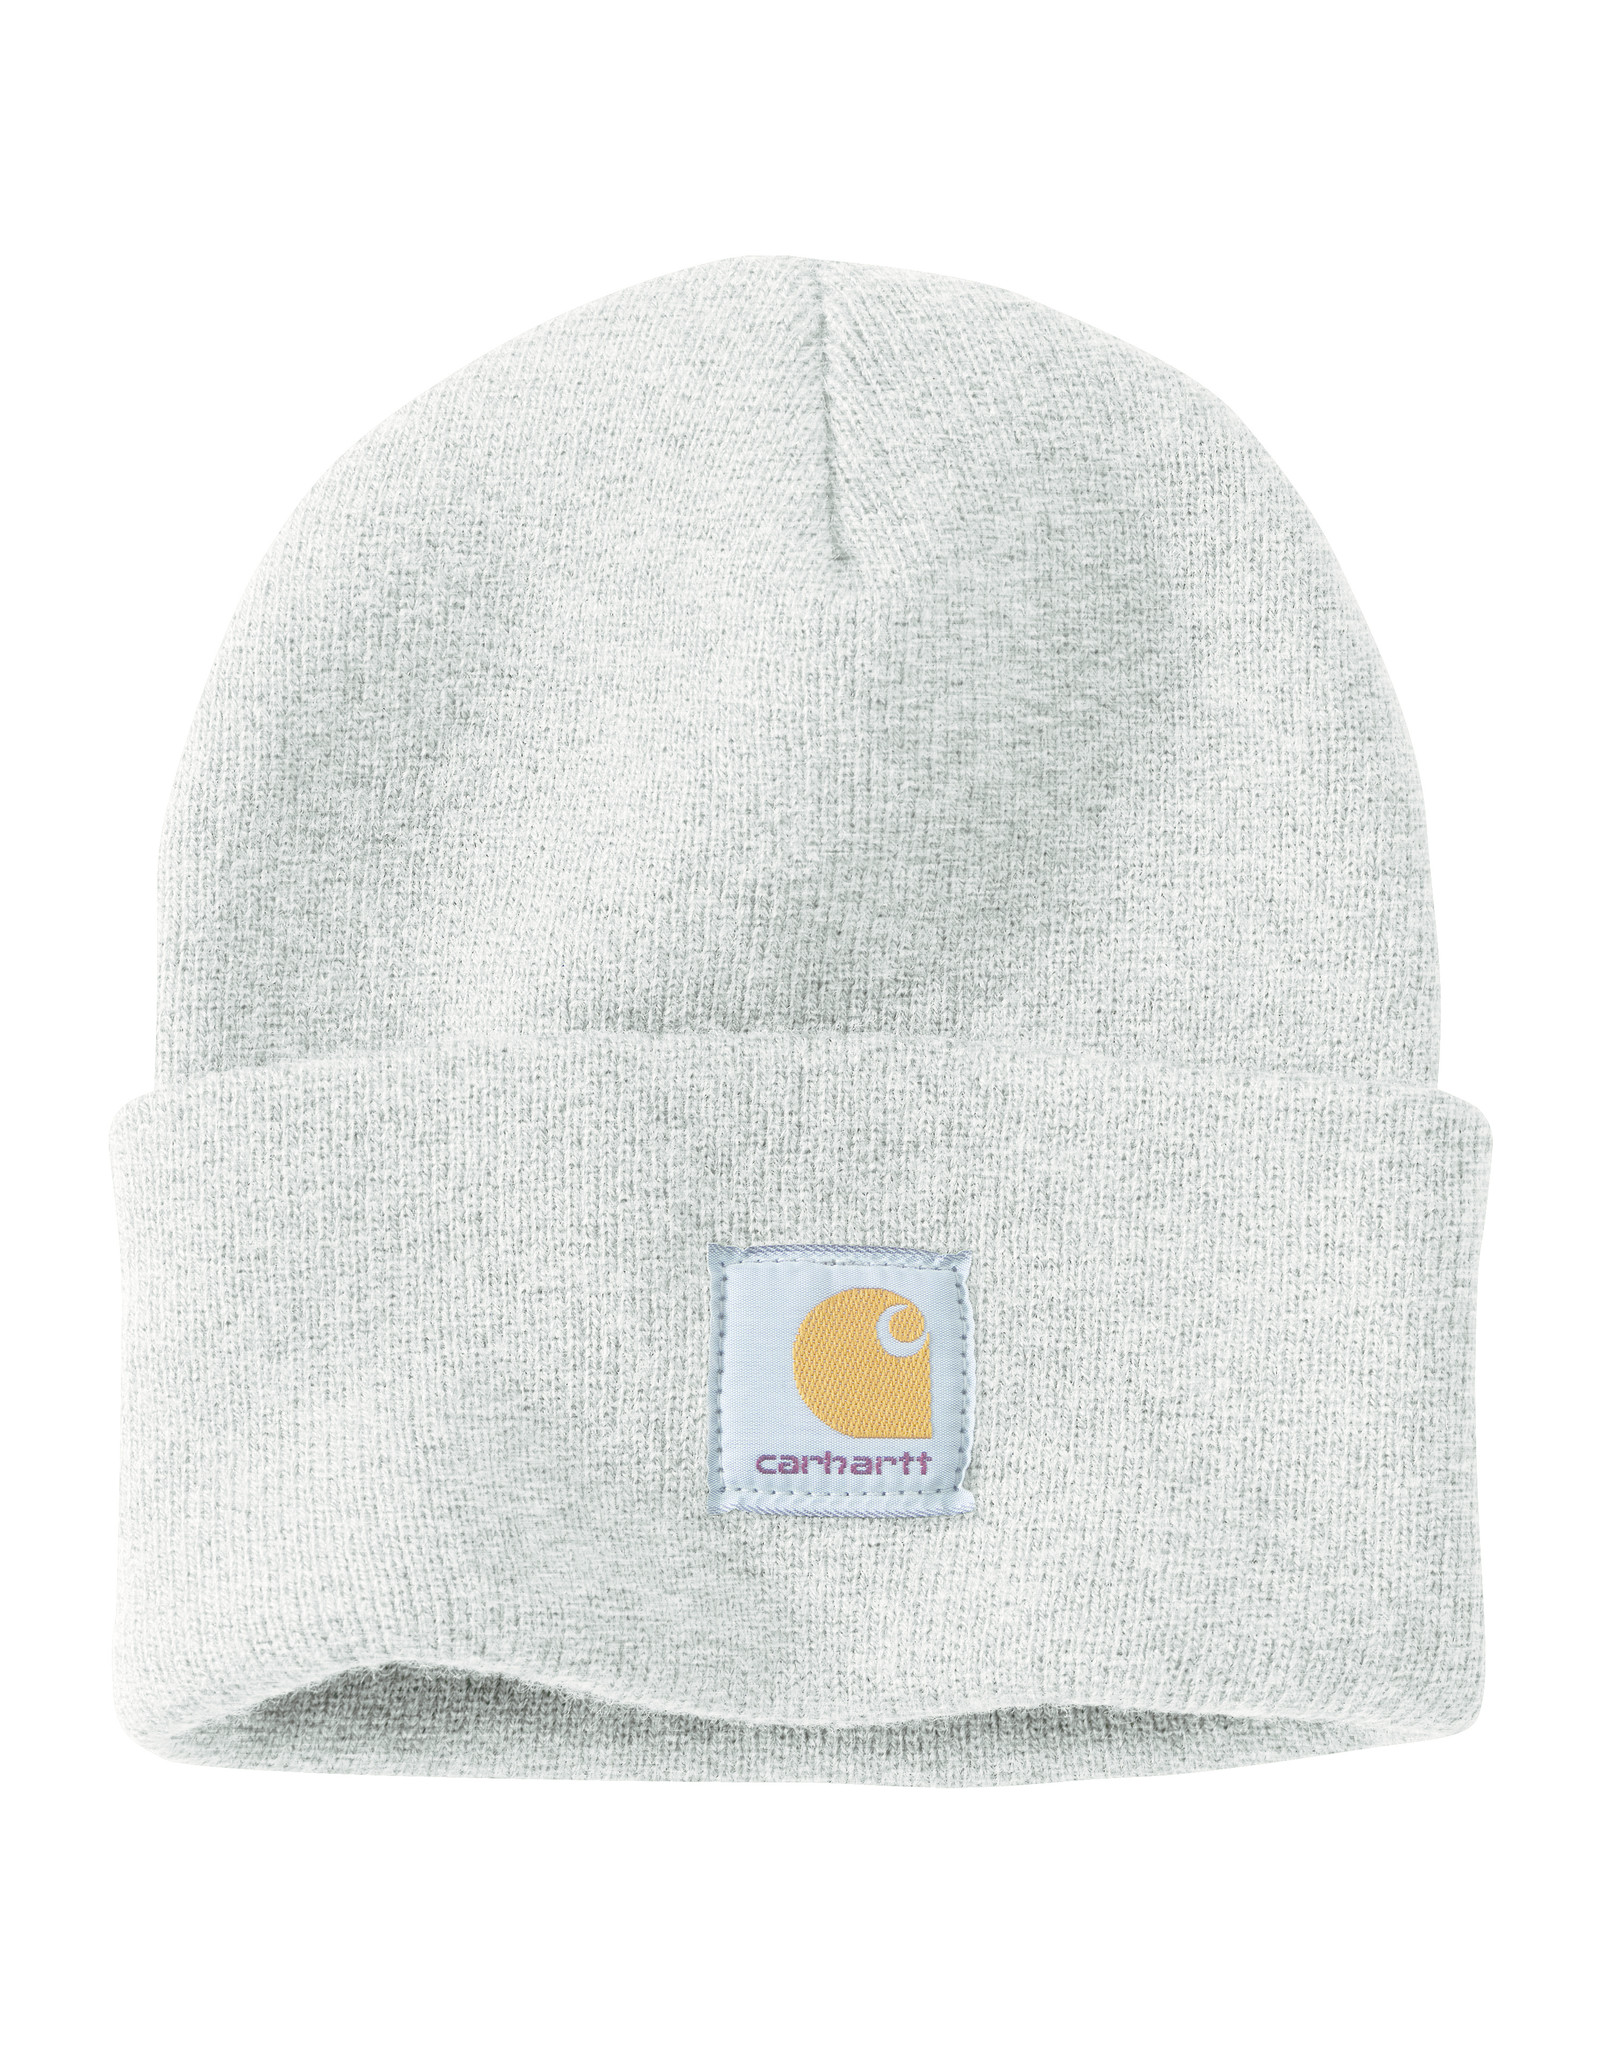 Carhartt Carhartt A18 Toque - Alabaster Heather